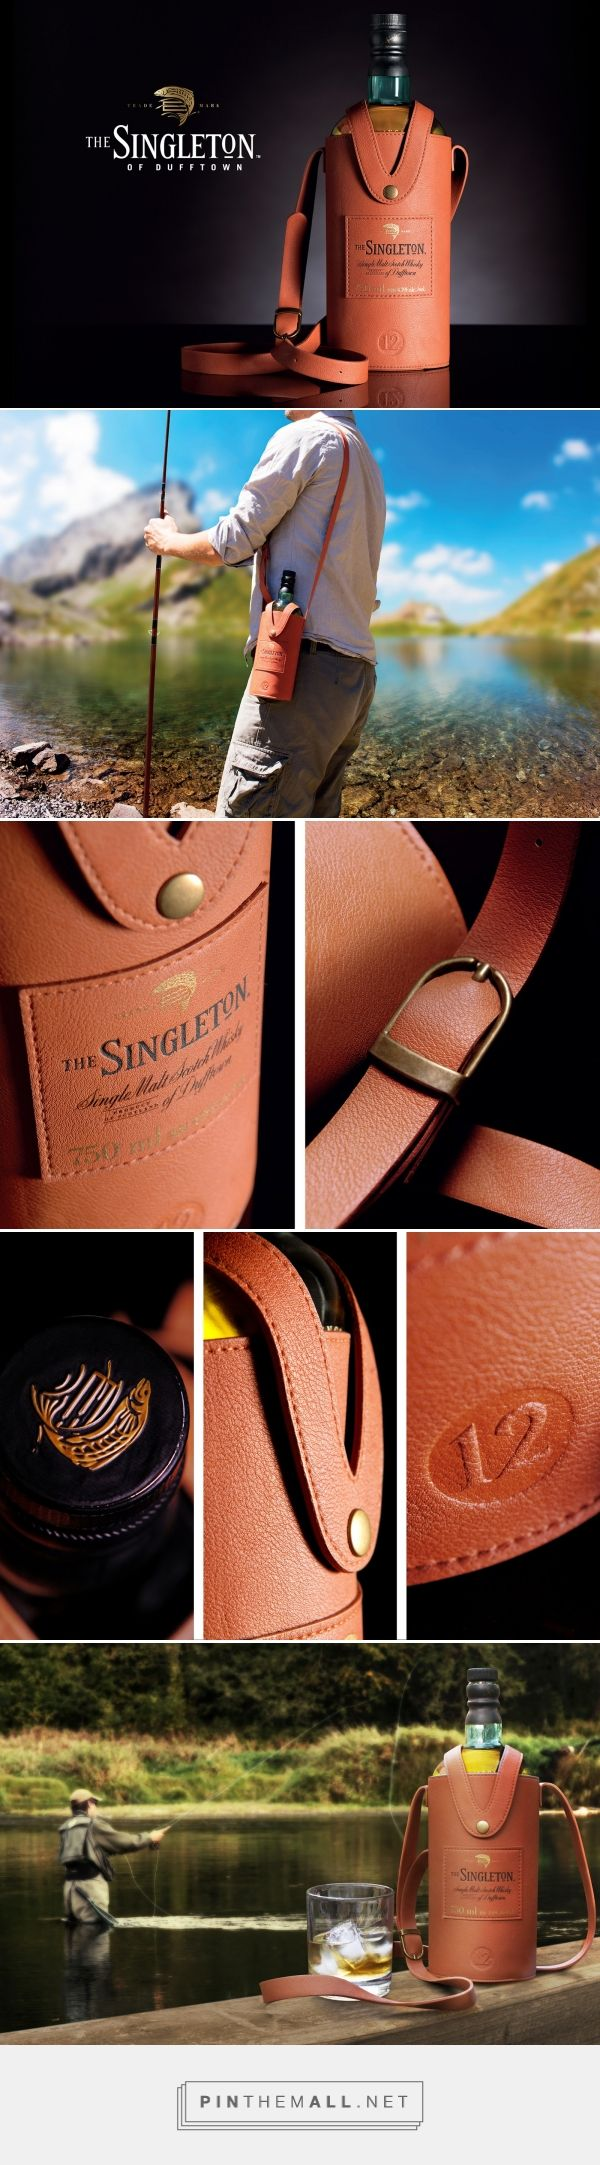 The Singleton - Limited Edition Gift Pack - Packaging of the World - Creative Package Design Gallery - http://www.packagingoftheworld.com/2017/02/the-singleton-limited-edition-gift-pack.html